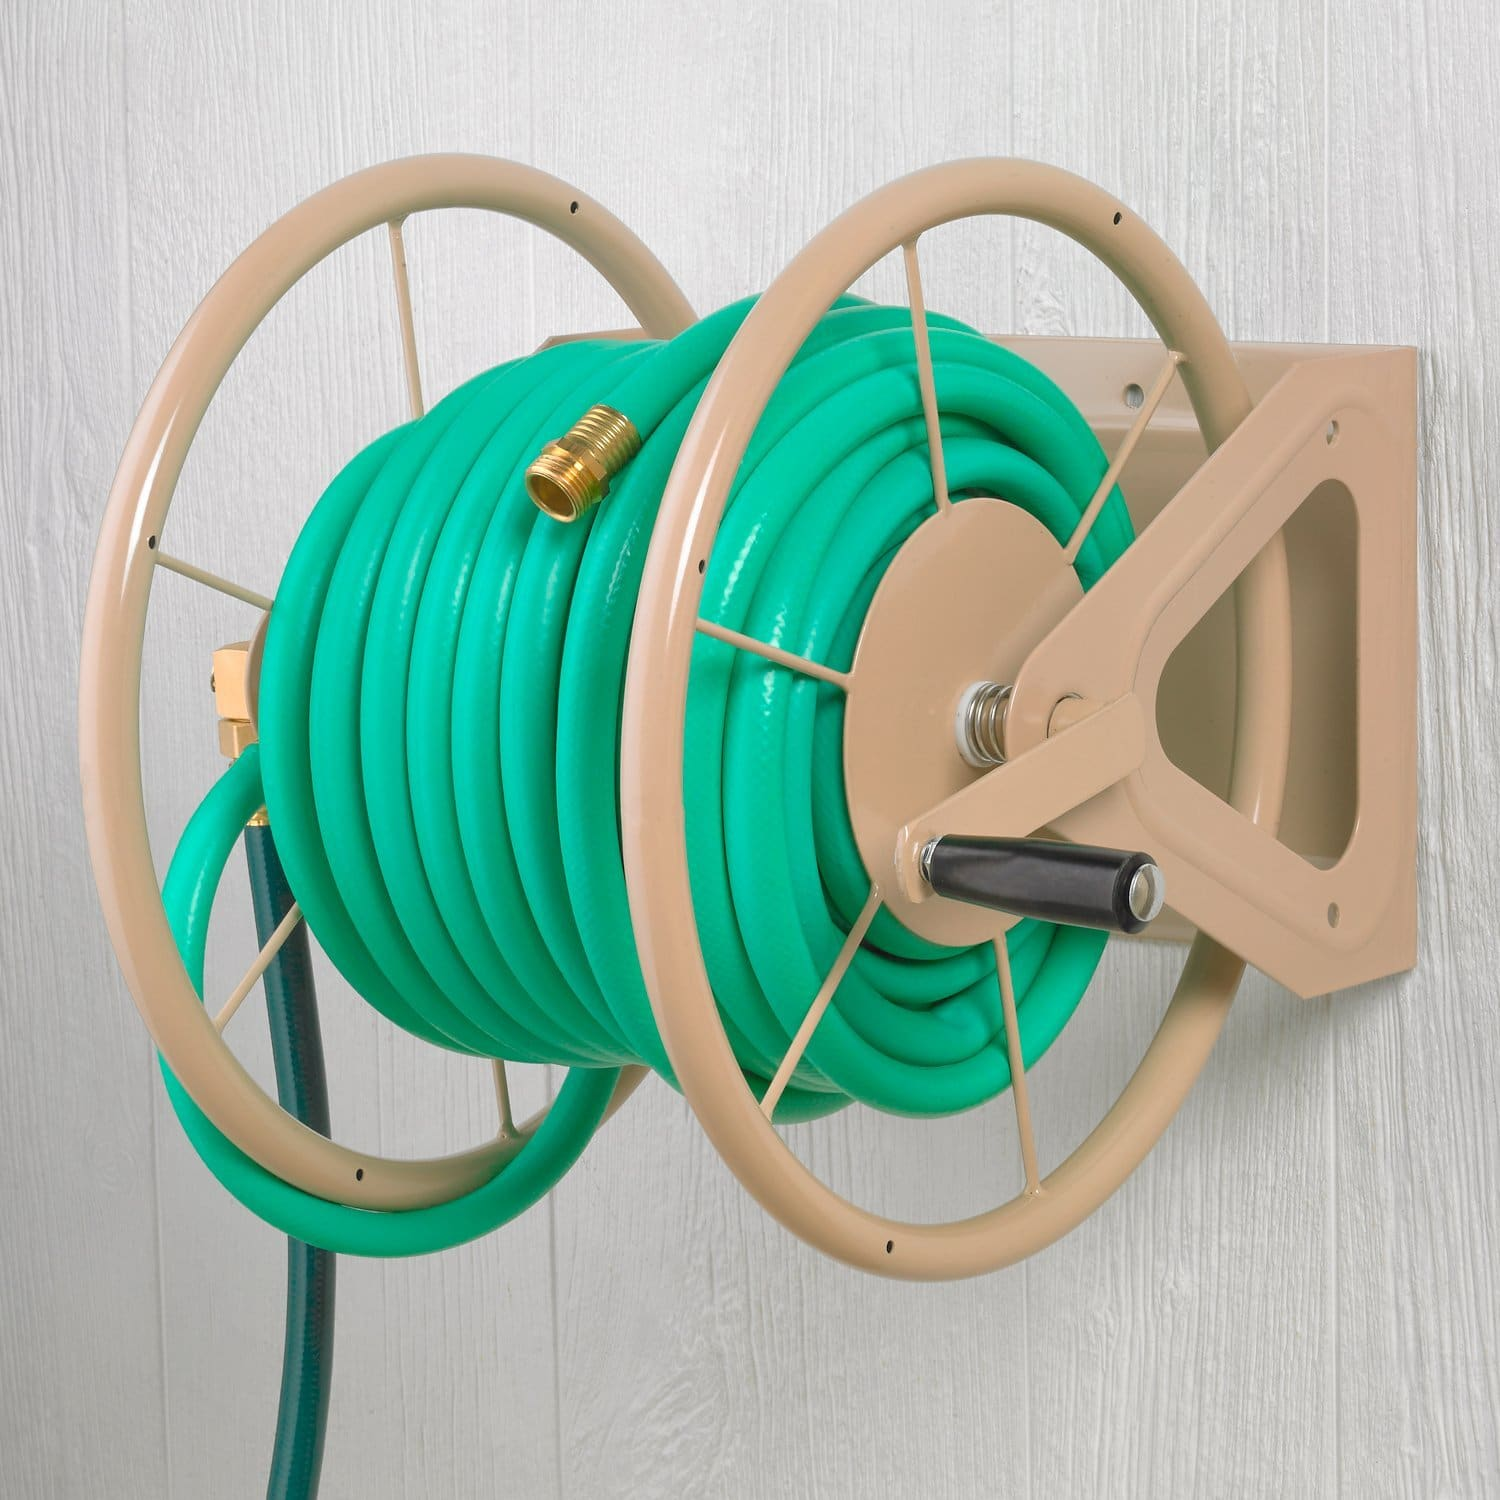 best garden hose reel, Liberty Garden Products Multi-Purpose Garden Hose Reel.